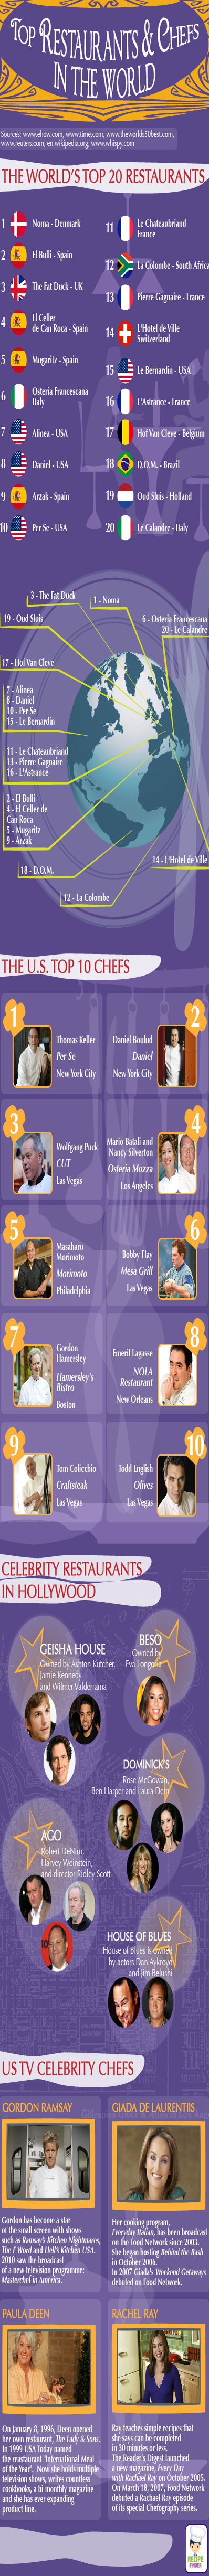 Top Restaurants and Chefs